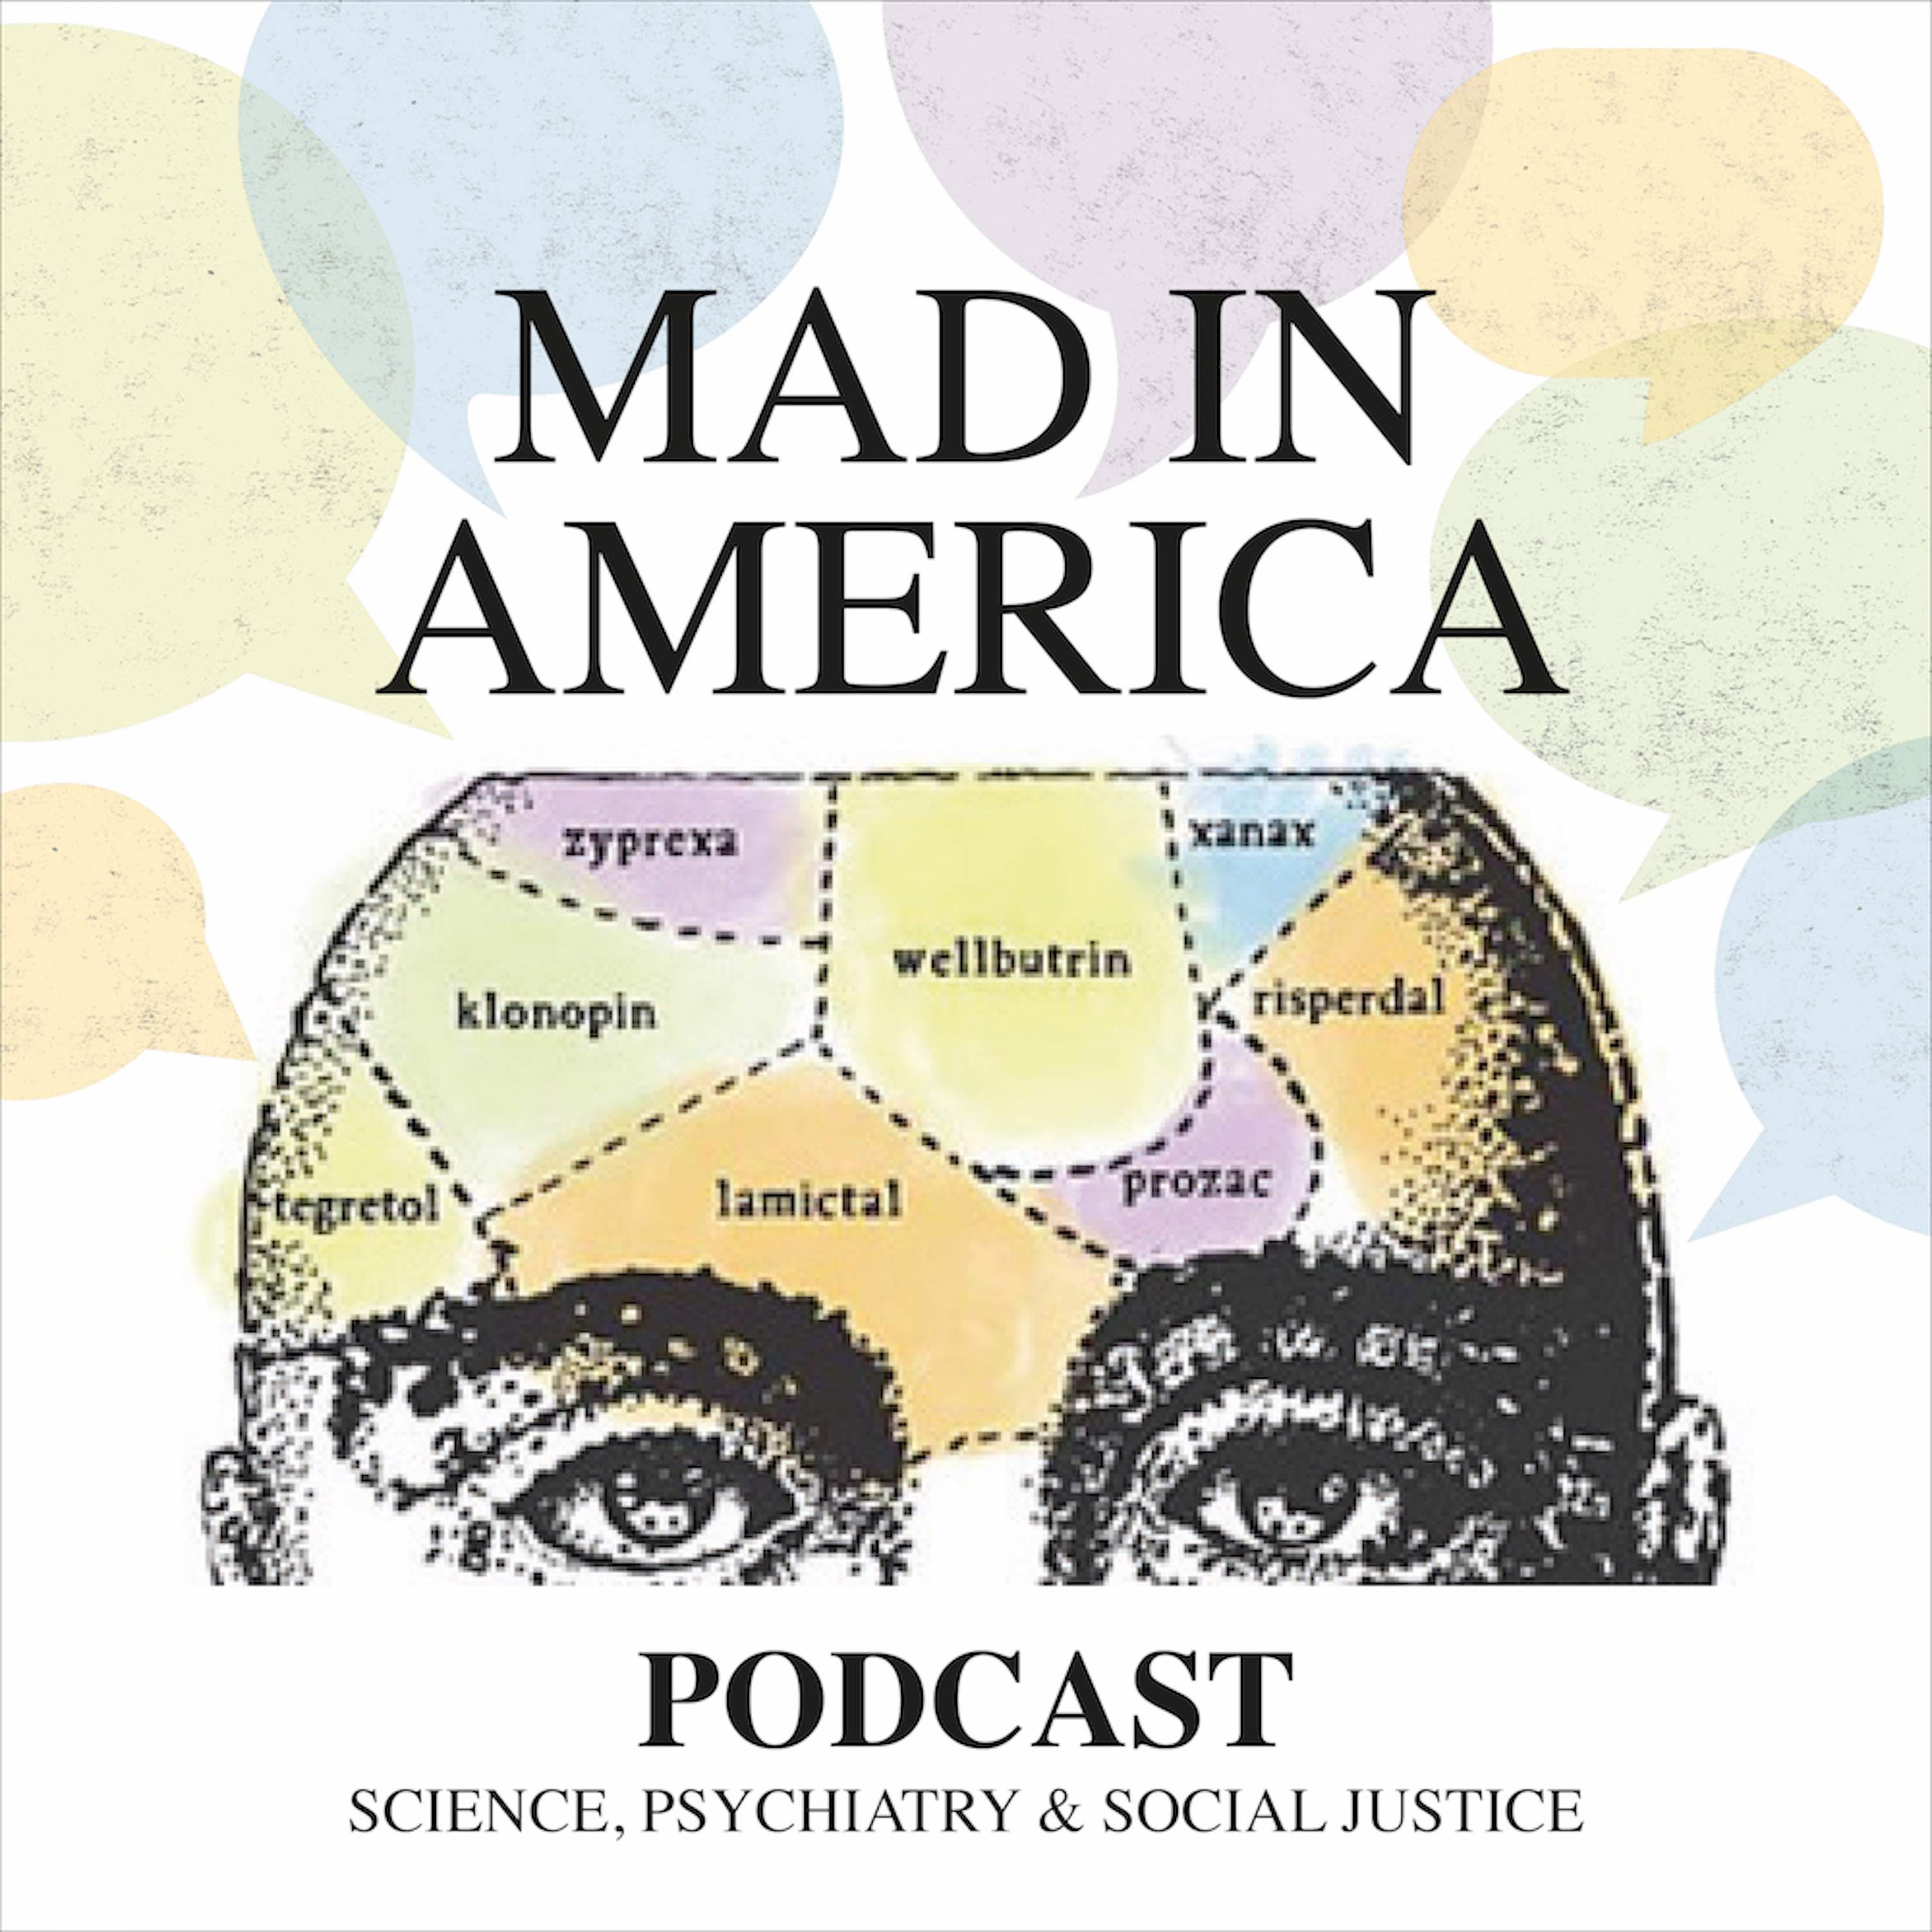 Mad in America: Rethinking Mental Health - Will Davies - The Happiness Industry